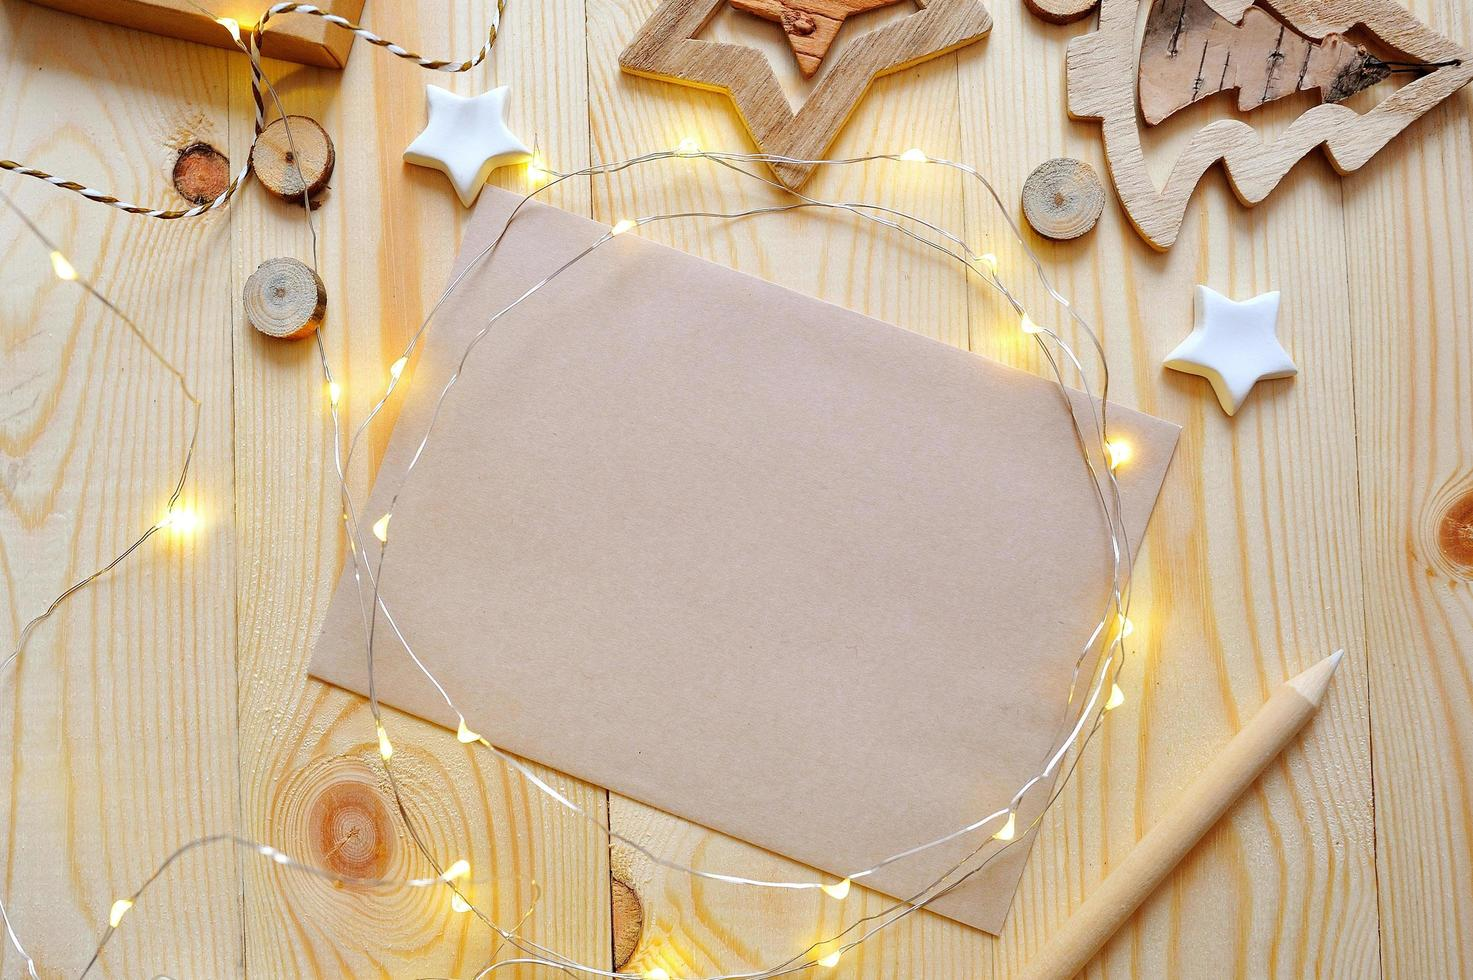 Blank paper among Christmas lights and decorations photo